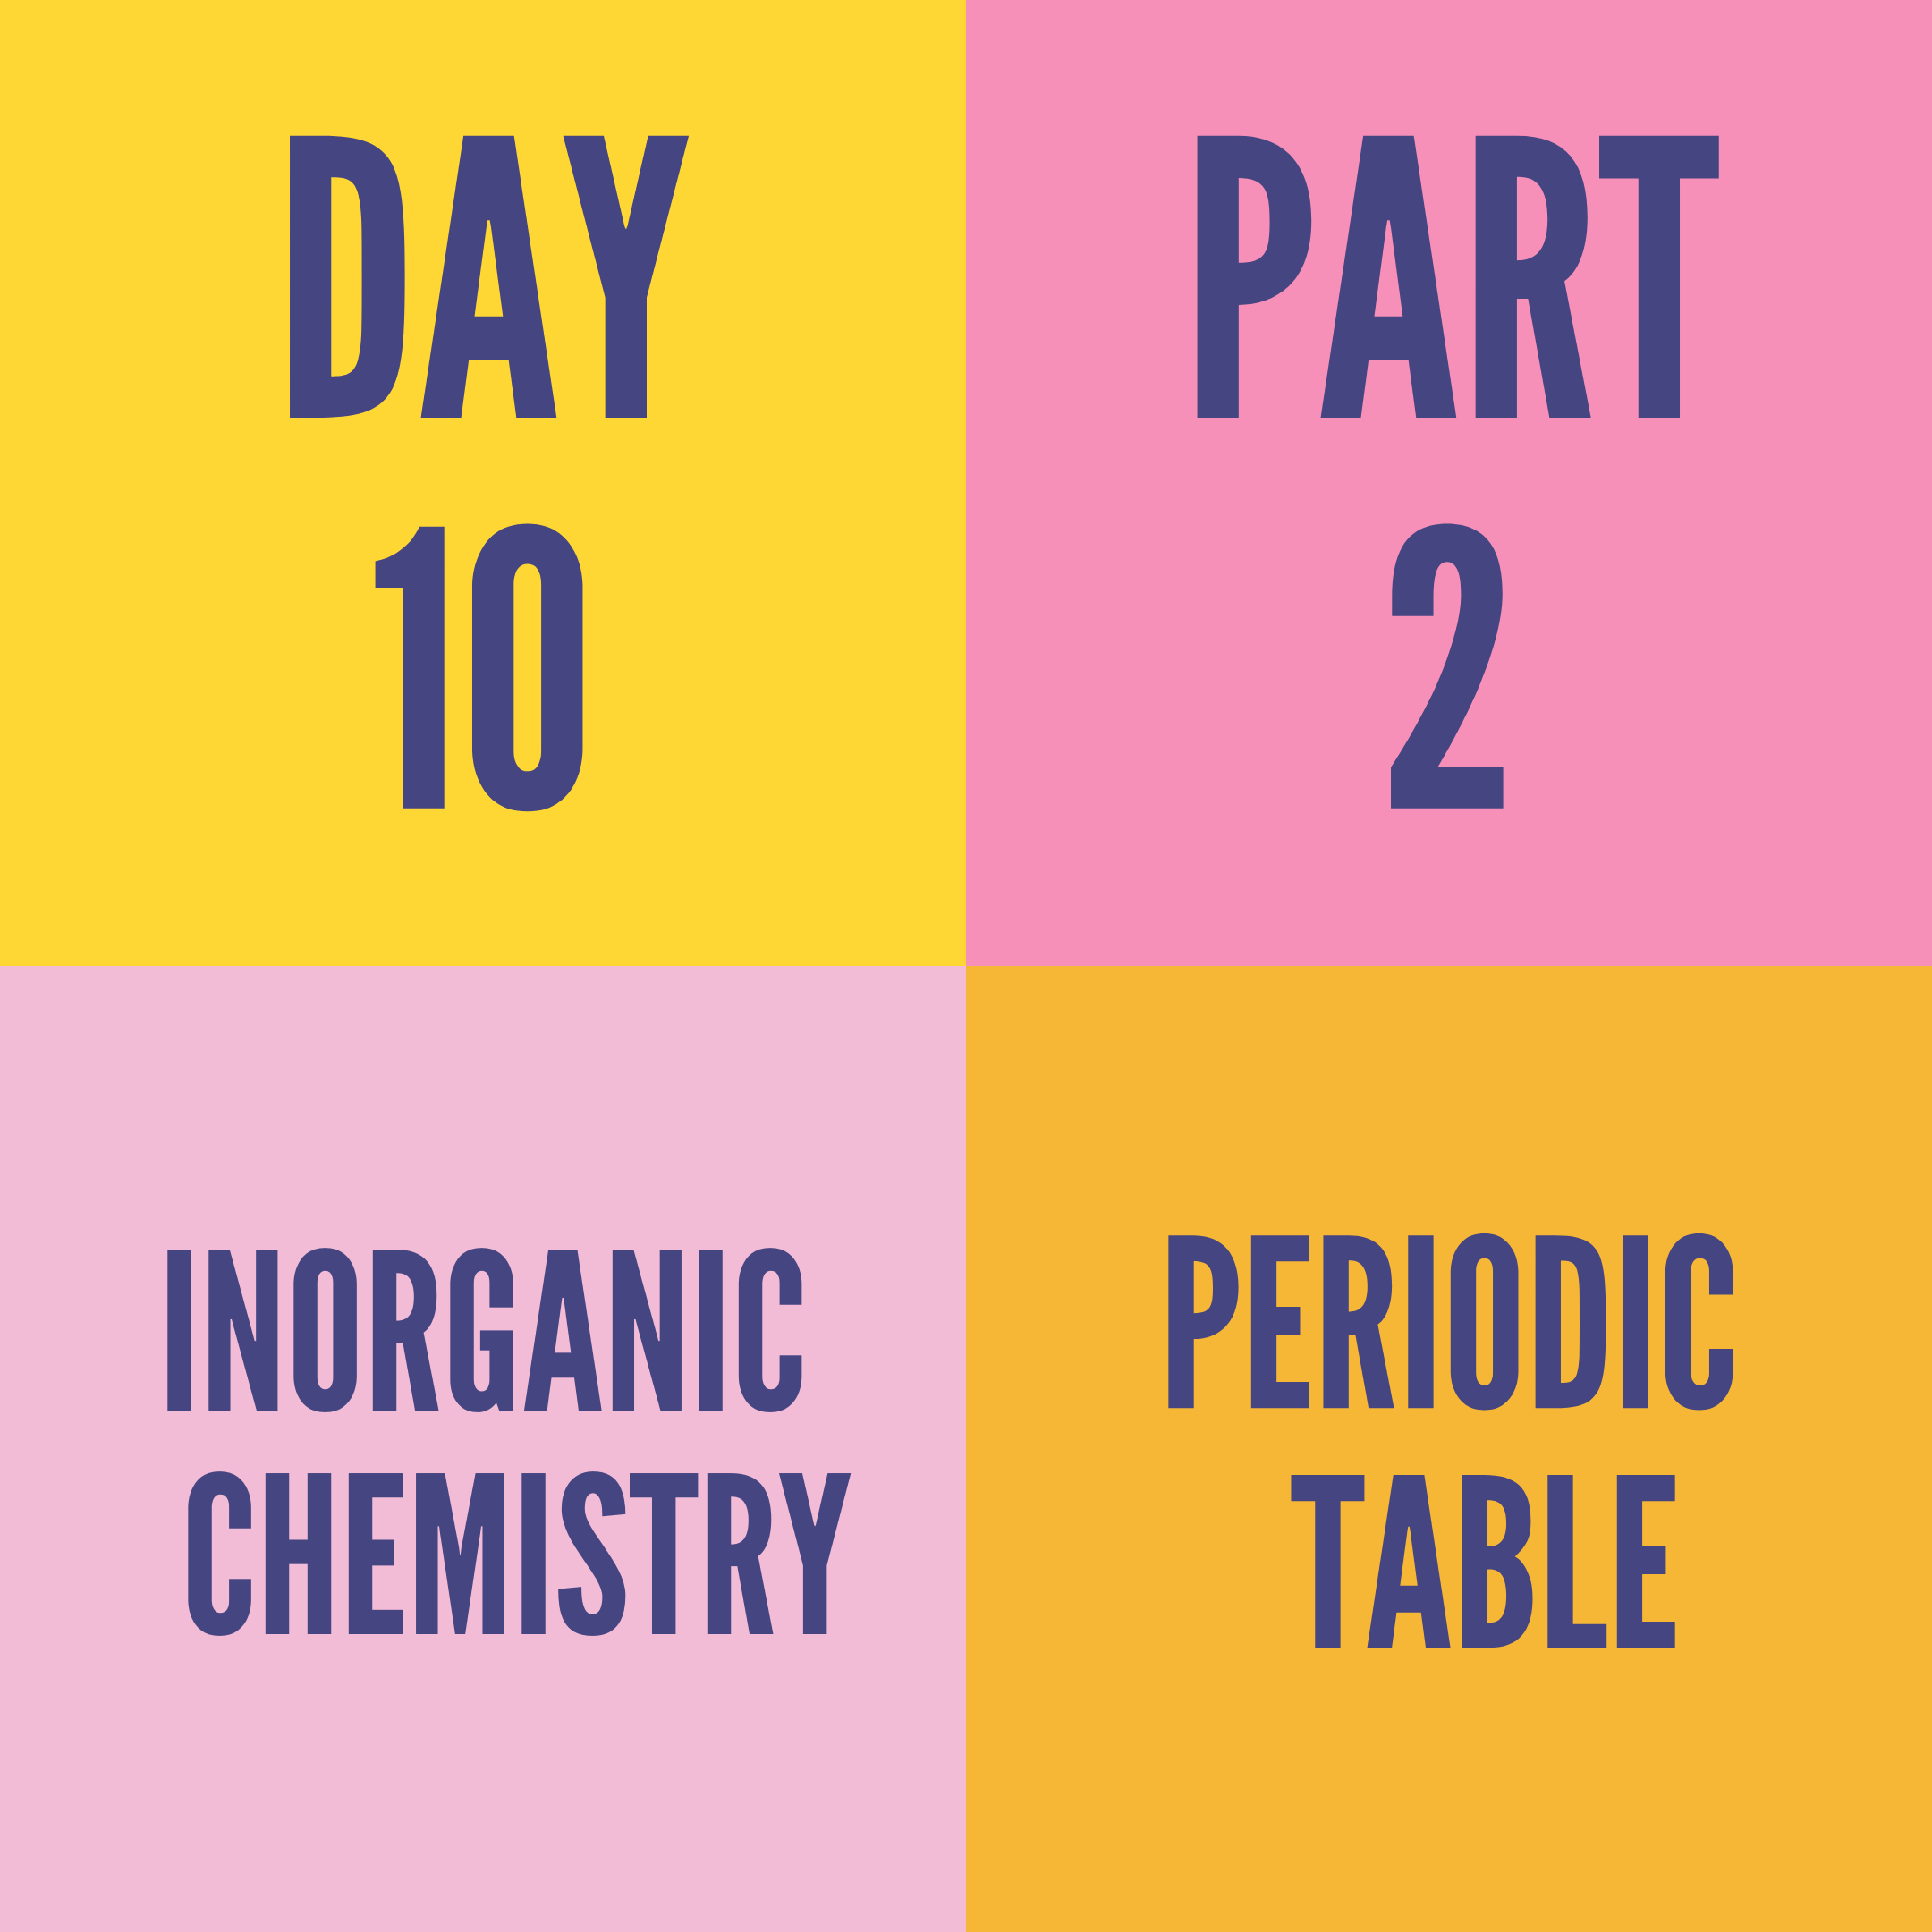 DAY-10 PART-2 PERIODIC TABLE